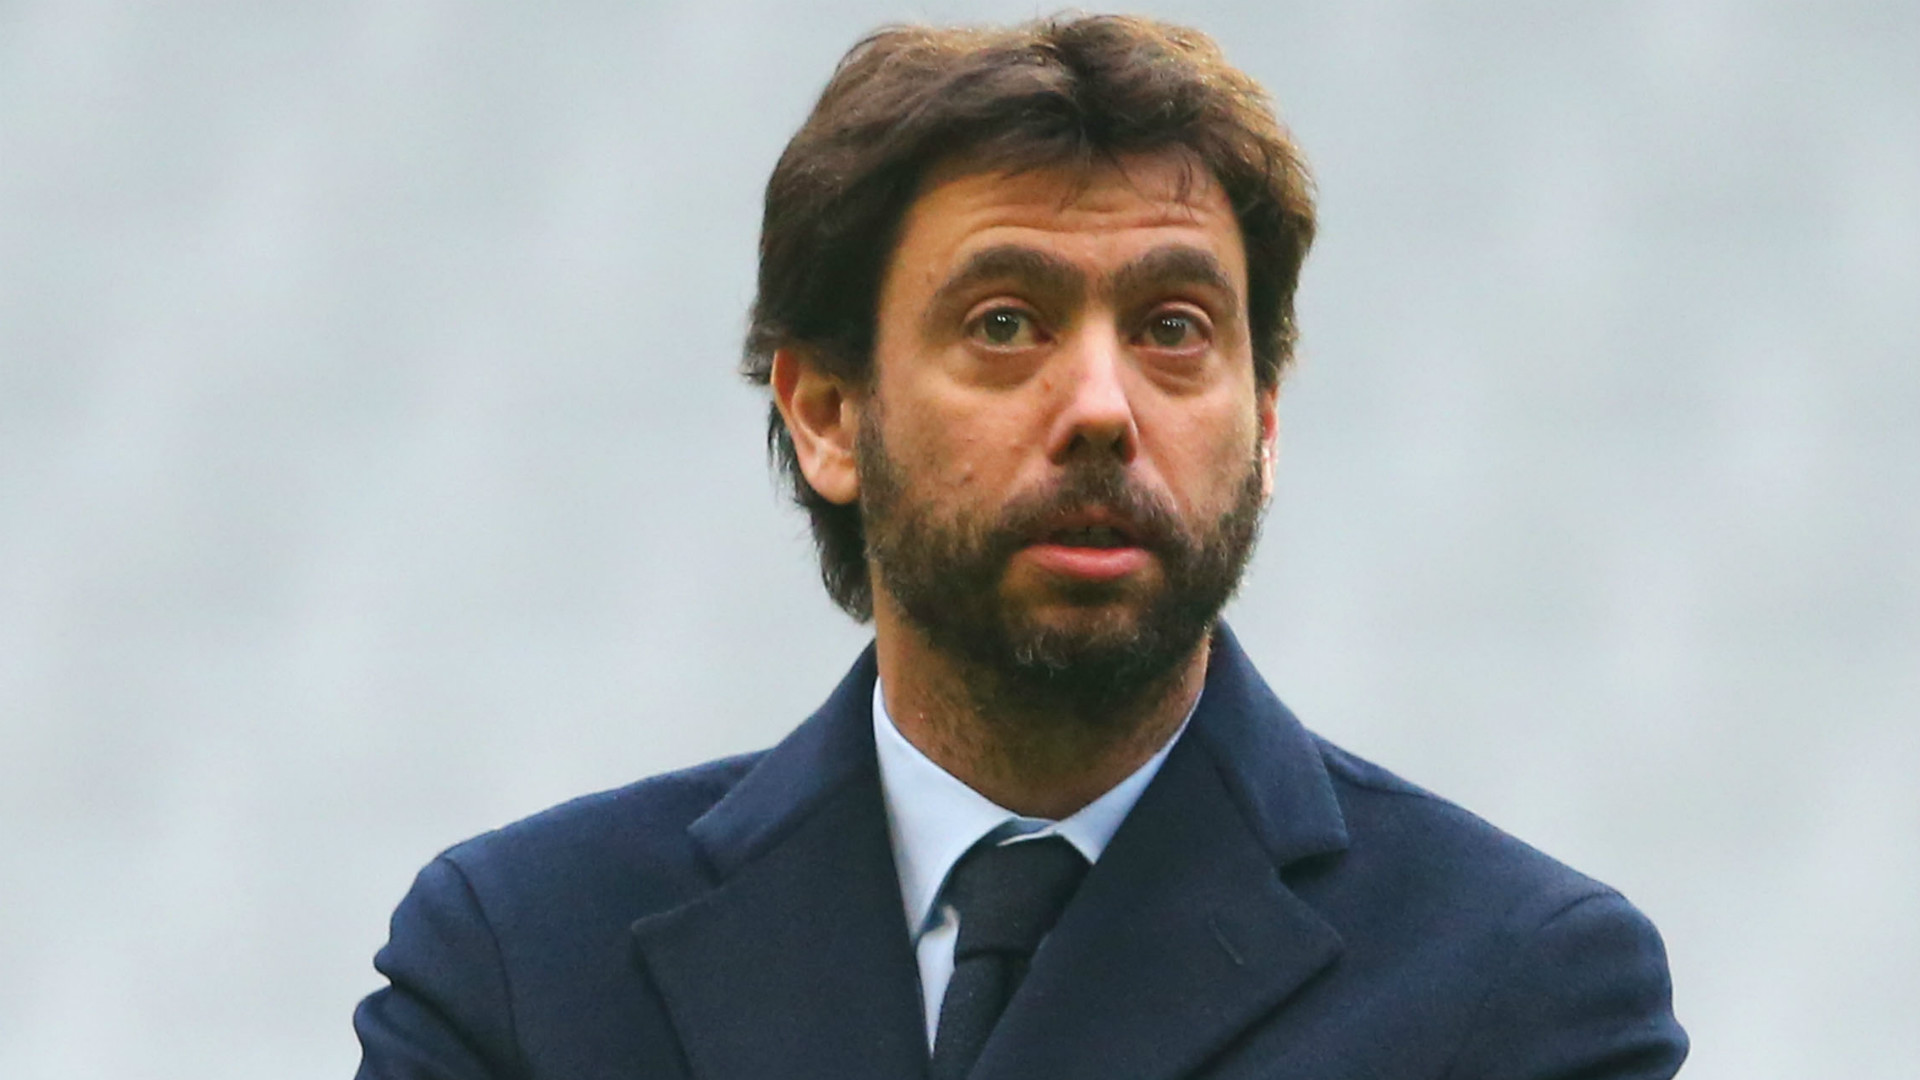 Juve president Agnelli handed 1-yr ban for illegal ticket sales